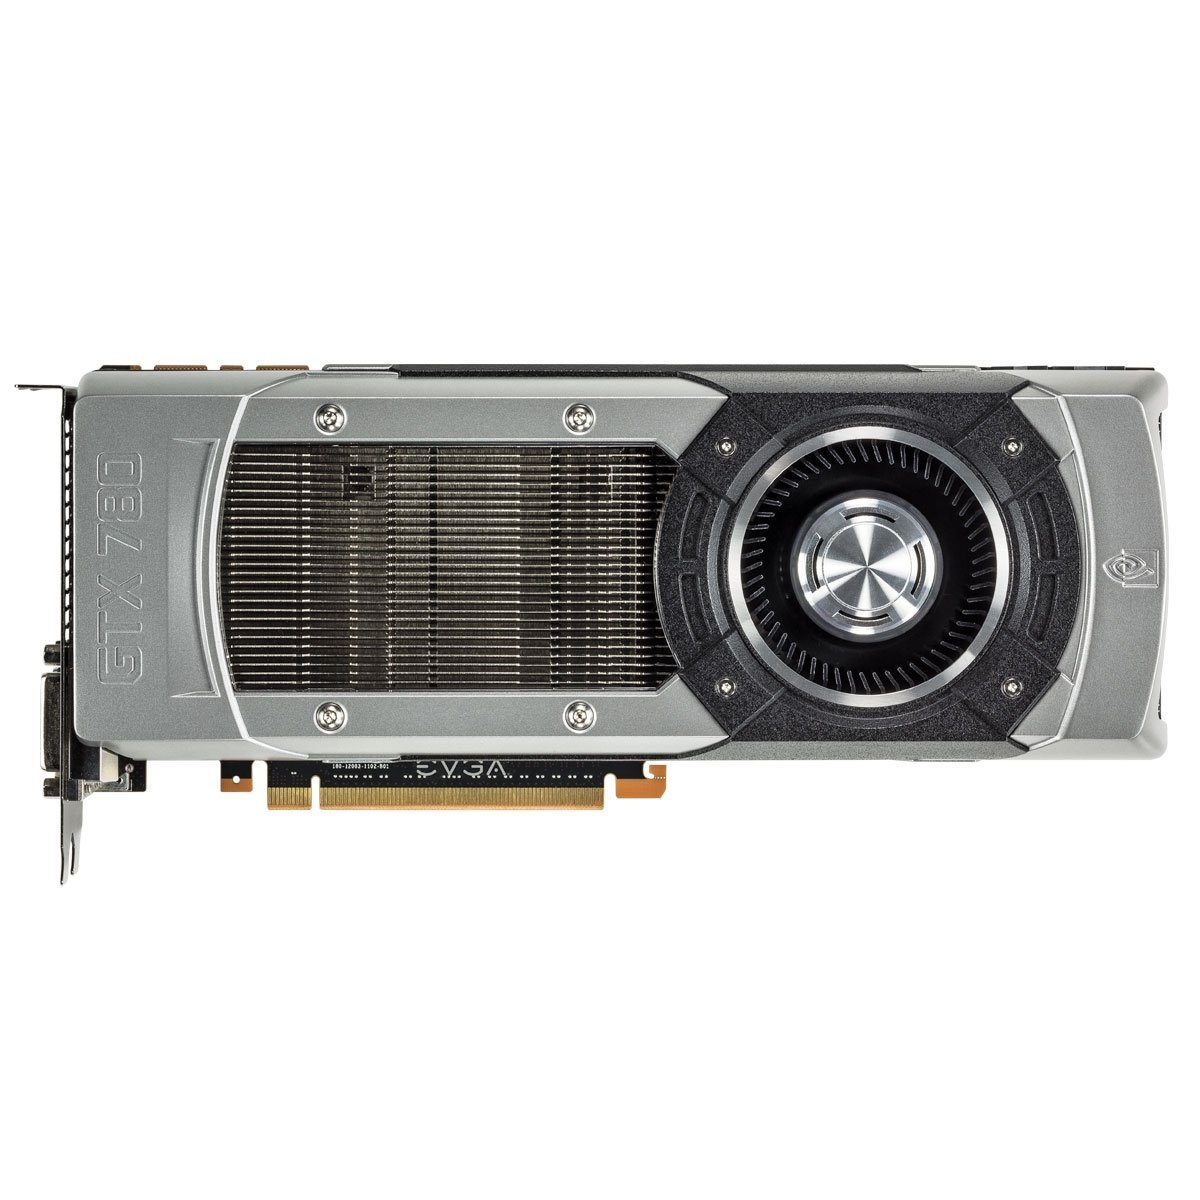 EVGA GeForce GTX 780 (3)